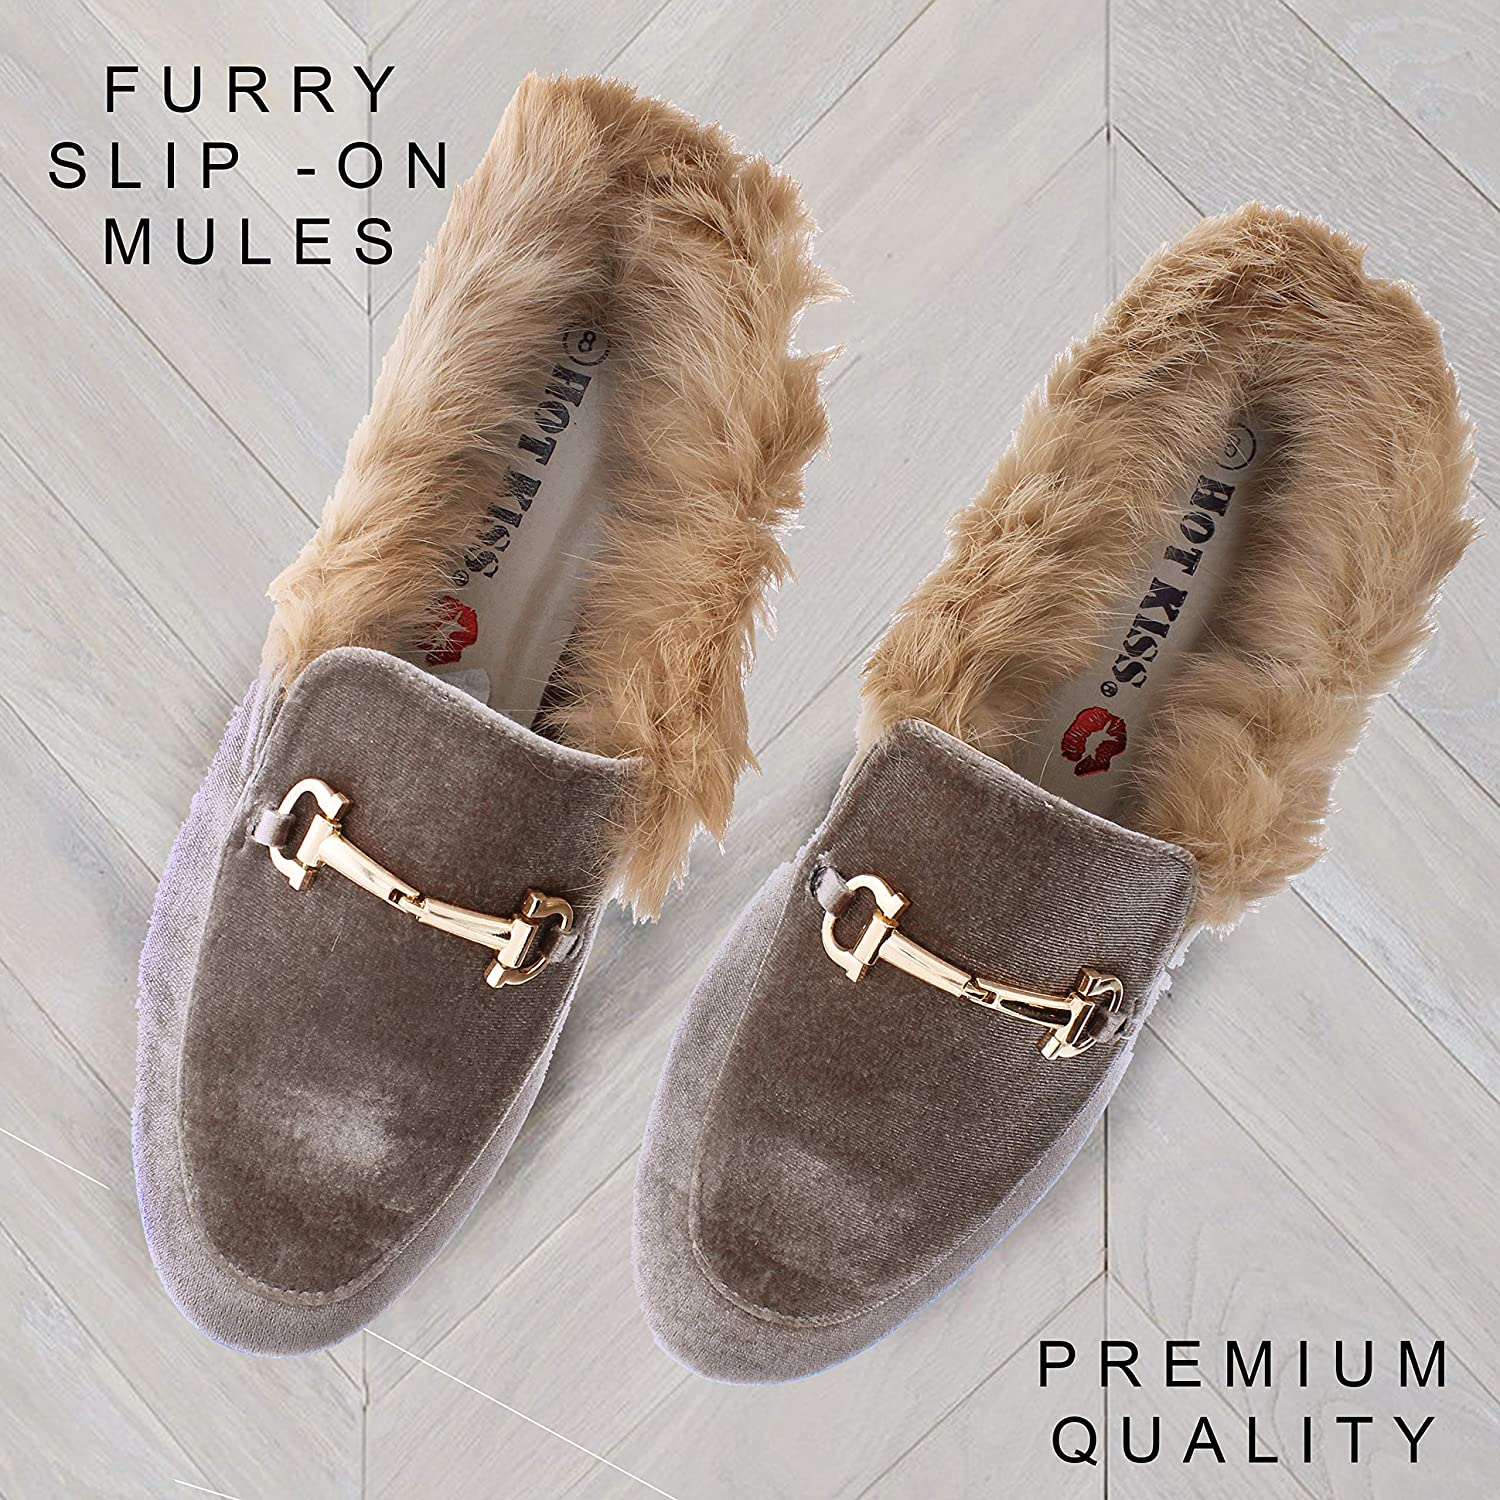 a92ed69c750e3 Hot Kiss Womens Horsebit Loafers Mules Shoes,Faux Fur Mule Slippers for  Women